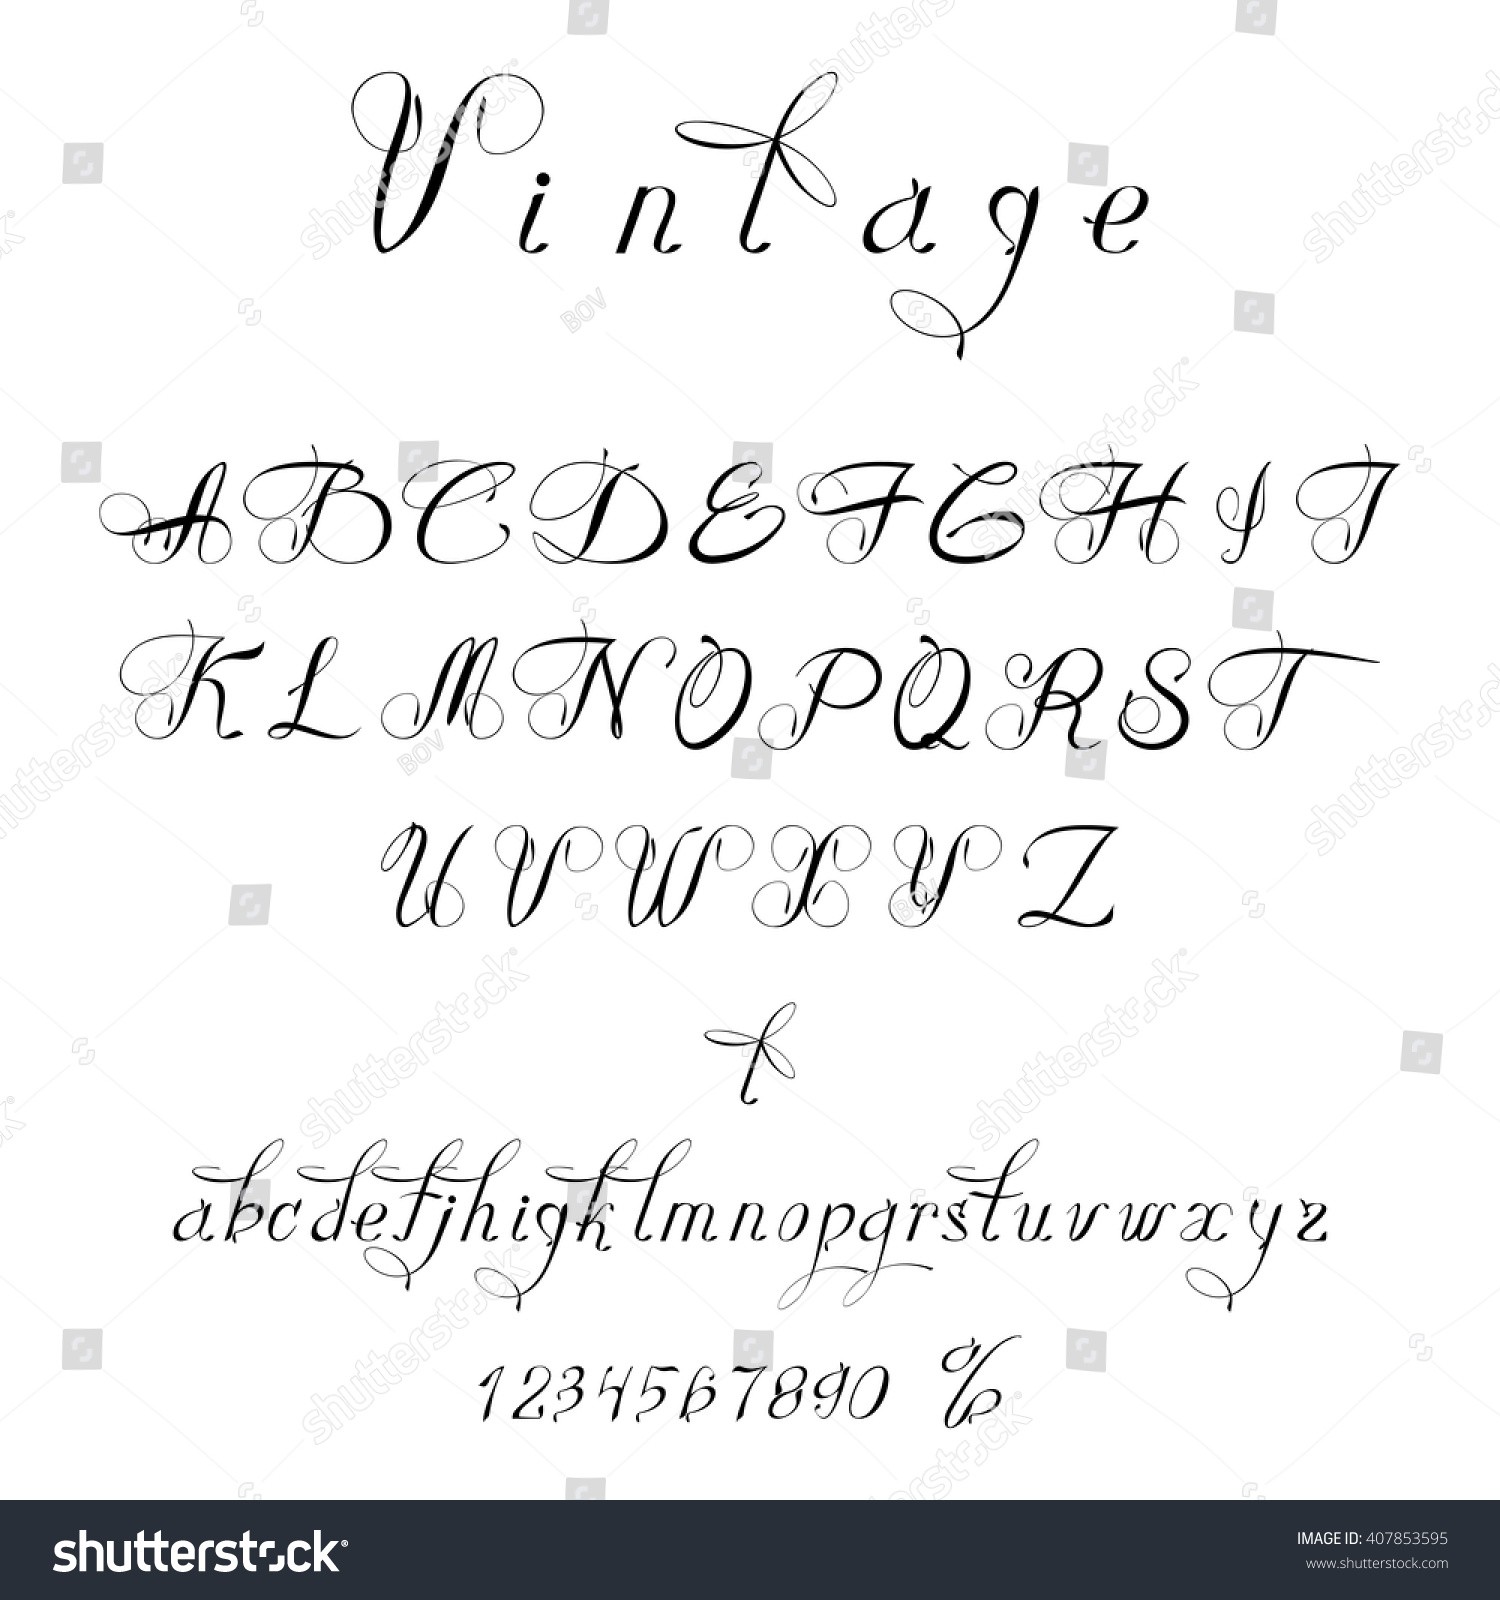 Script font in vintage style. The font can be used to design wedding invitations and